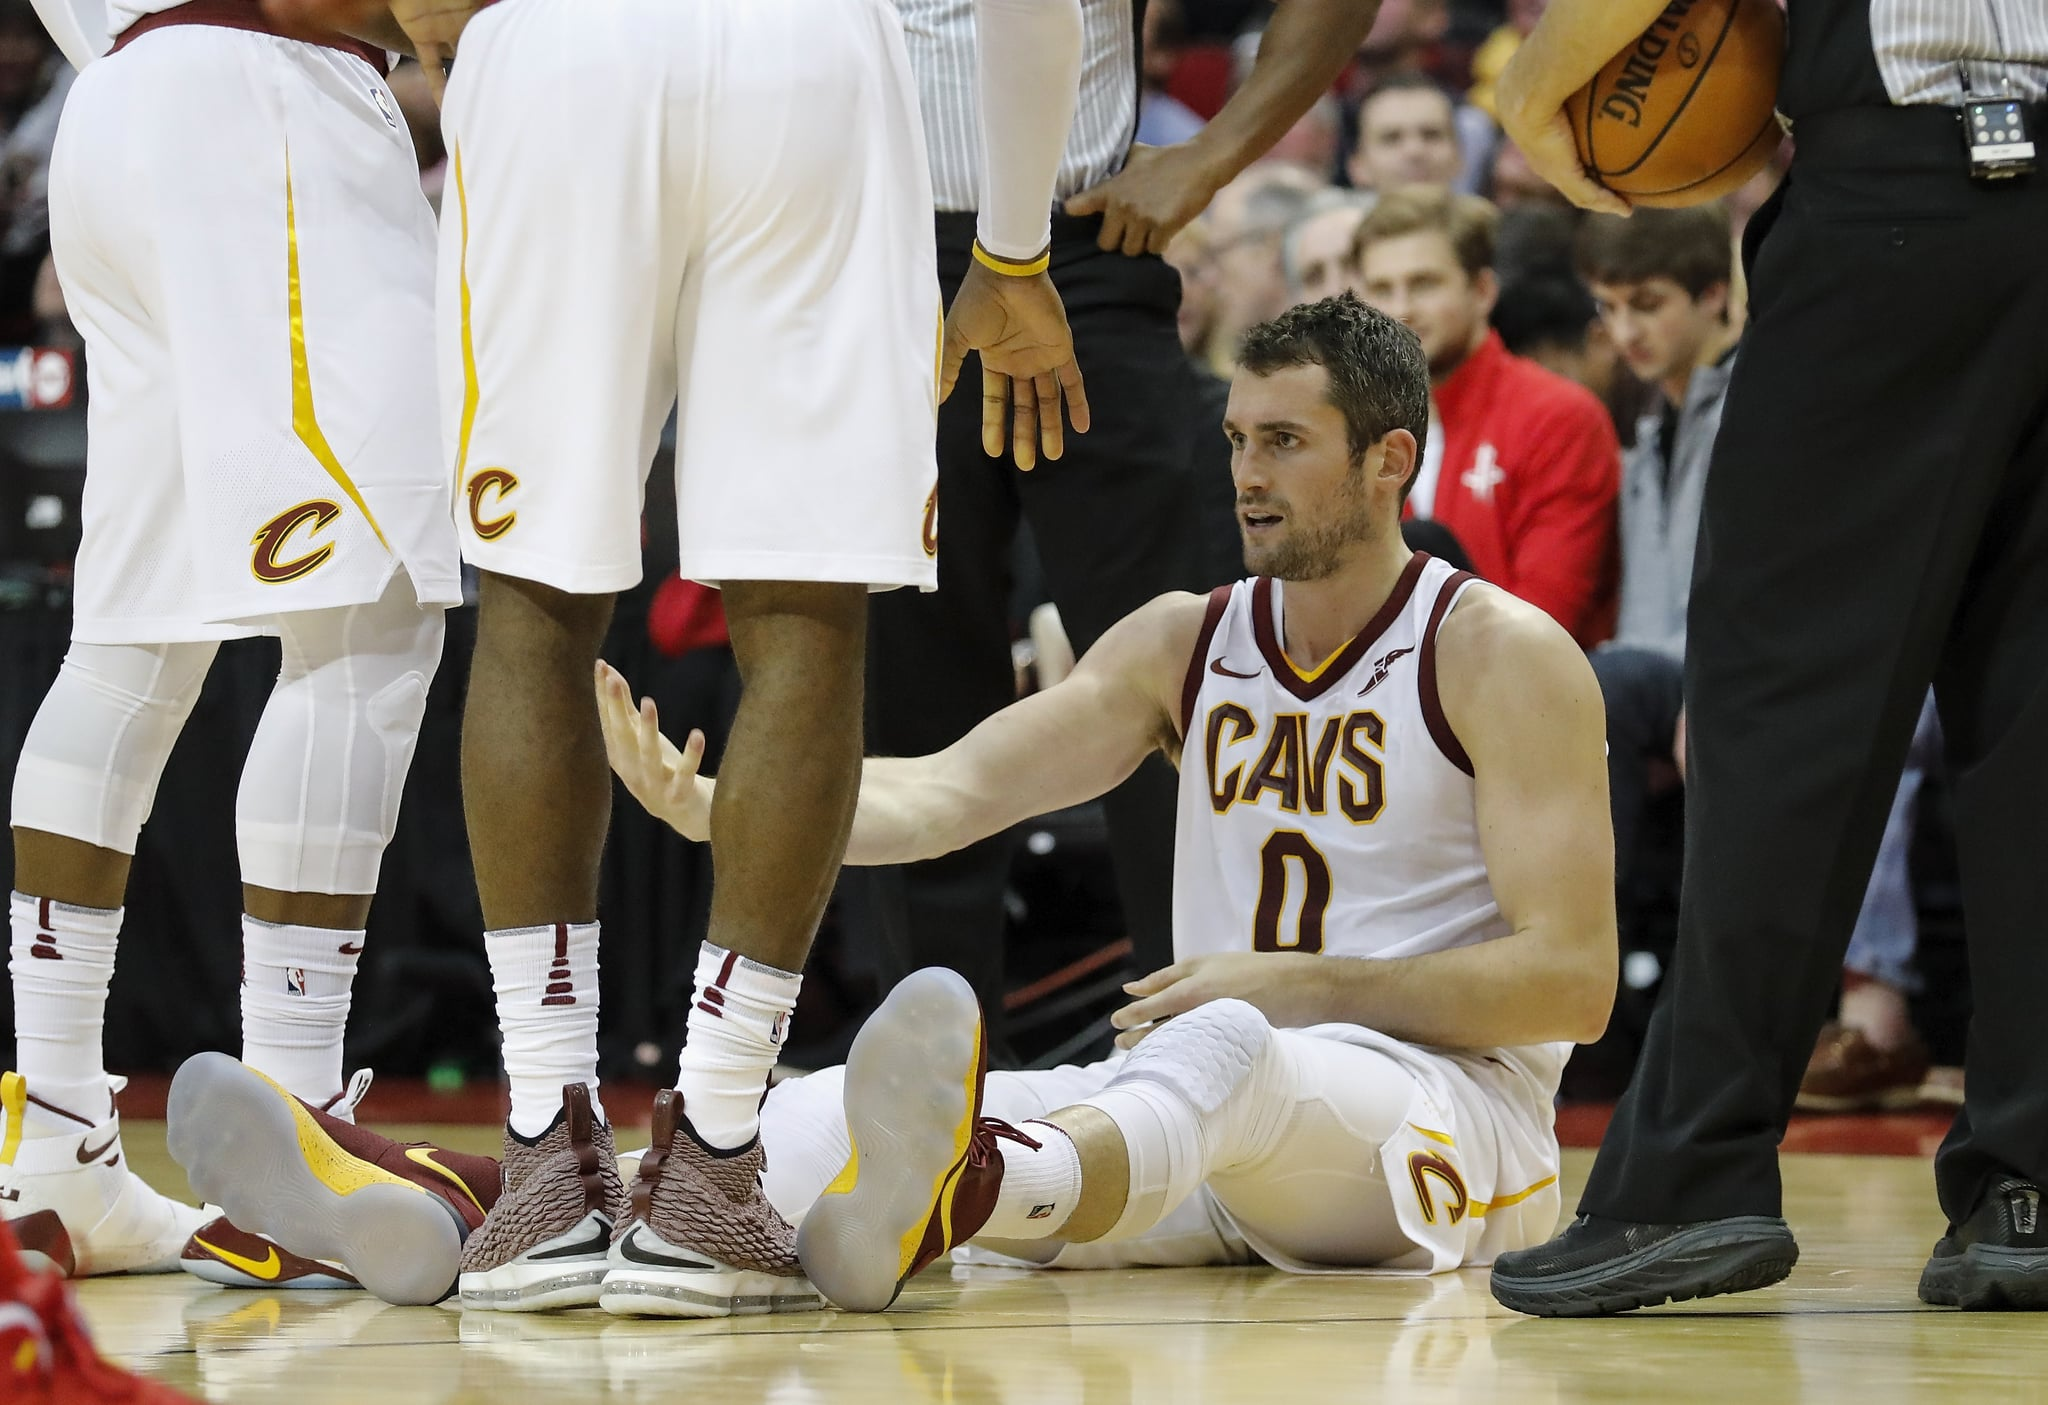 HOUSTON, TX - NOVEMBER 09:  Kevin Love #0 of the Cleveland Cavaliers is helped from the floor in the first half against the Houston Rockets at Toyota Center on November 09, 2017 in Houston, Texas.  NOTE TO USER: User expressly acknowledges and agrees that, by downloading and or using this photograph, User is consenting to the terms and conditions of the Getty Images License Agreement.  (Photo by Tim Warner/Getty Images)